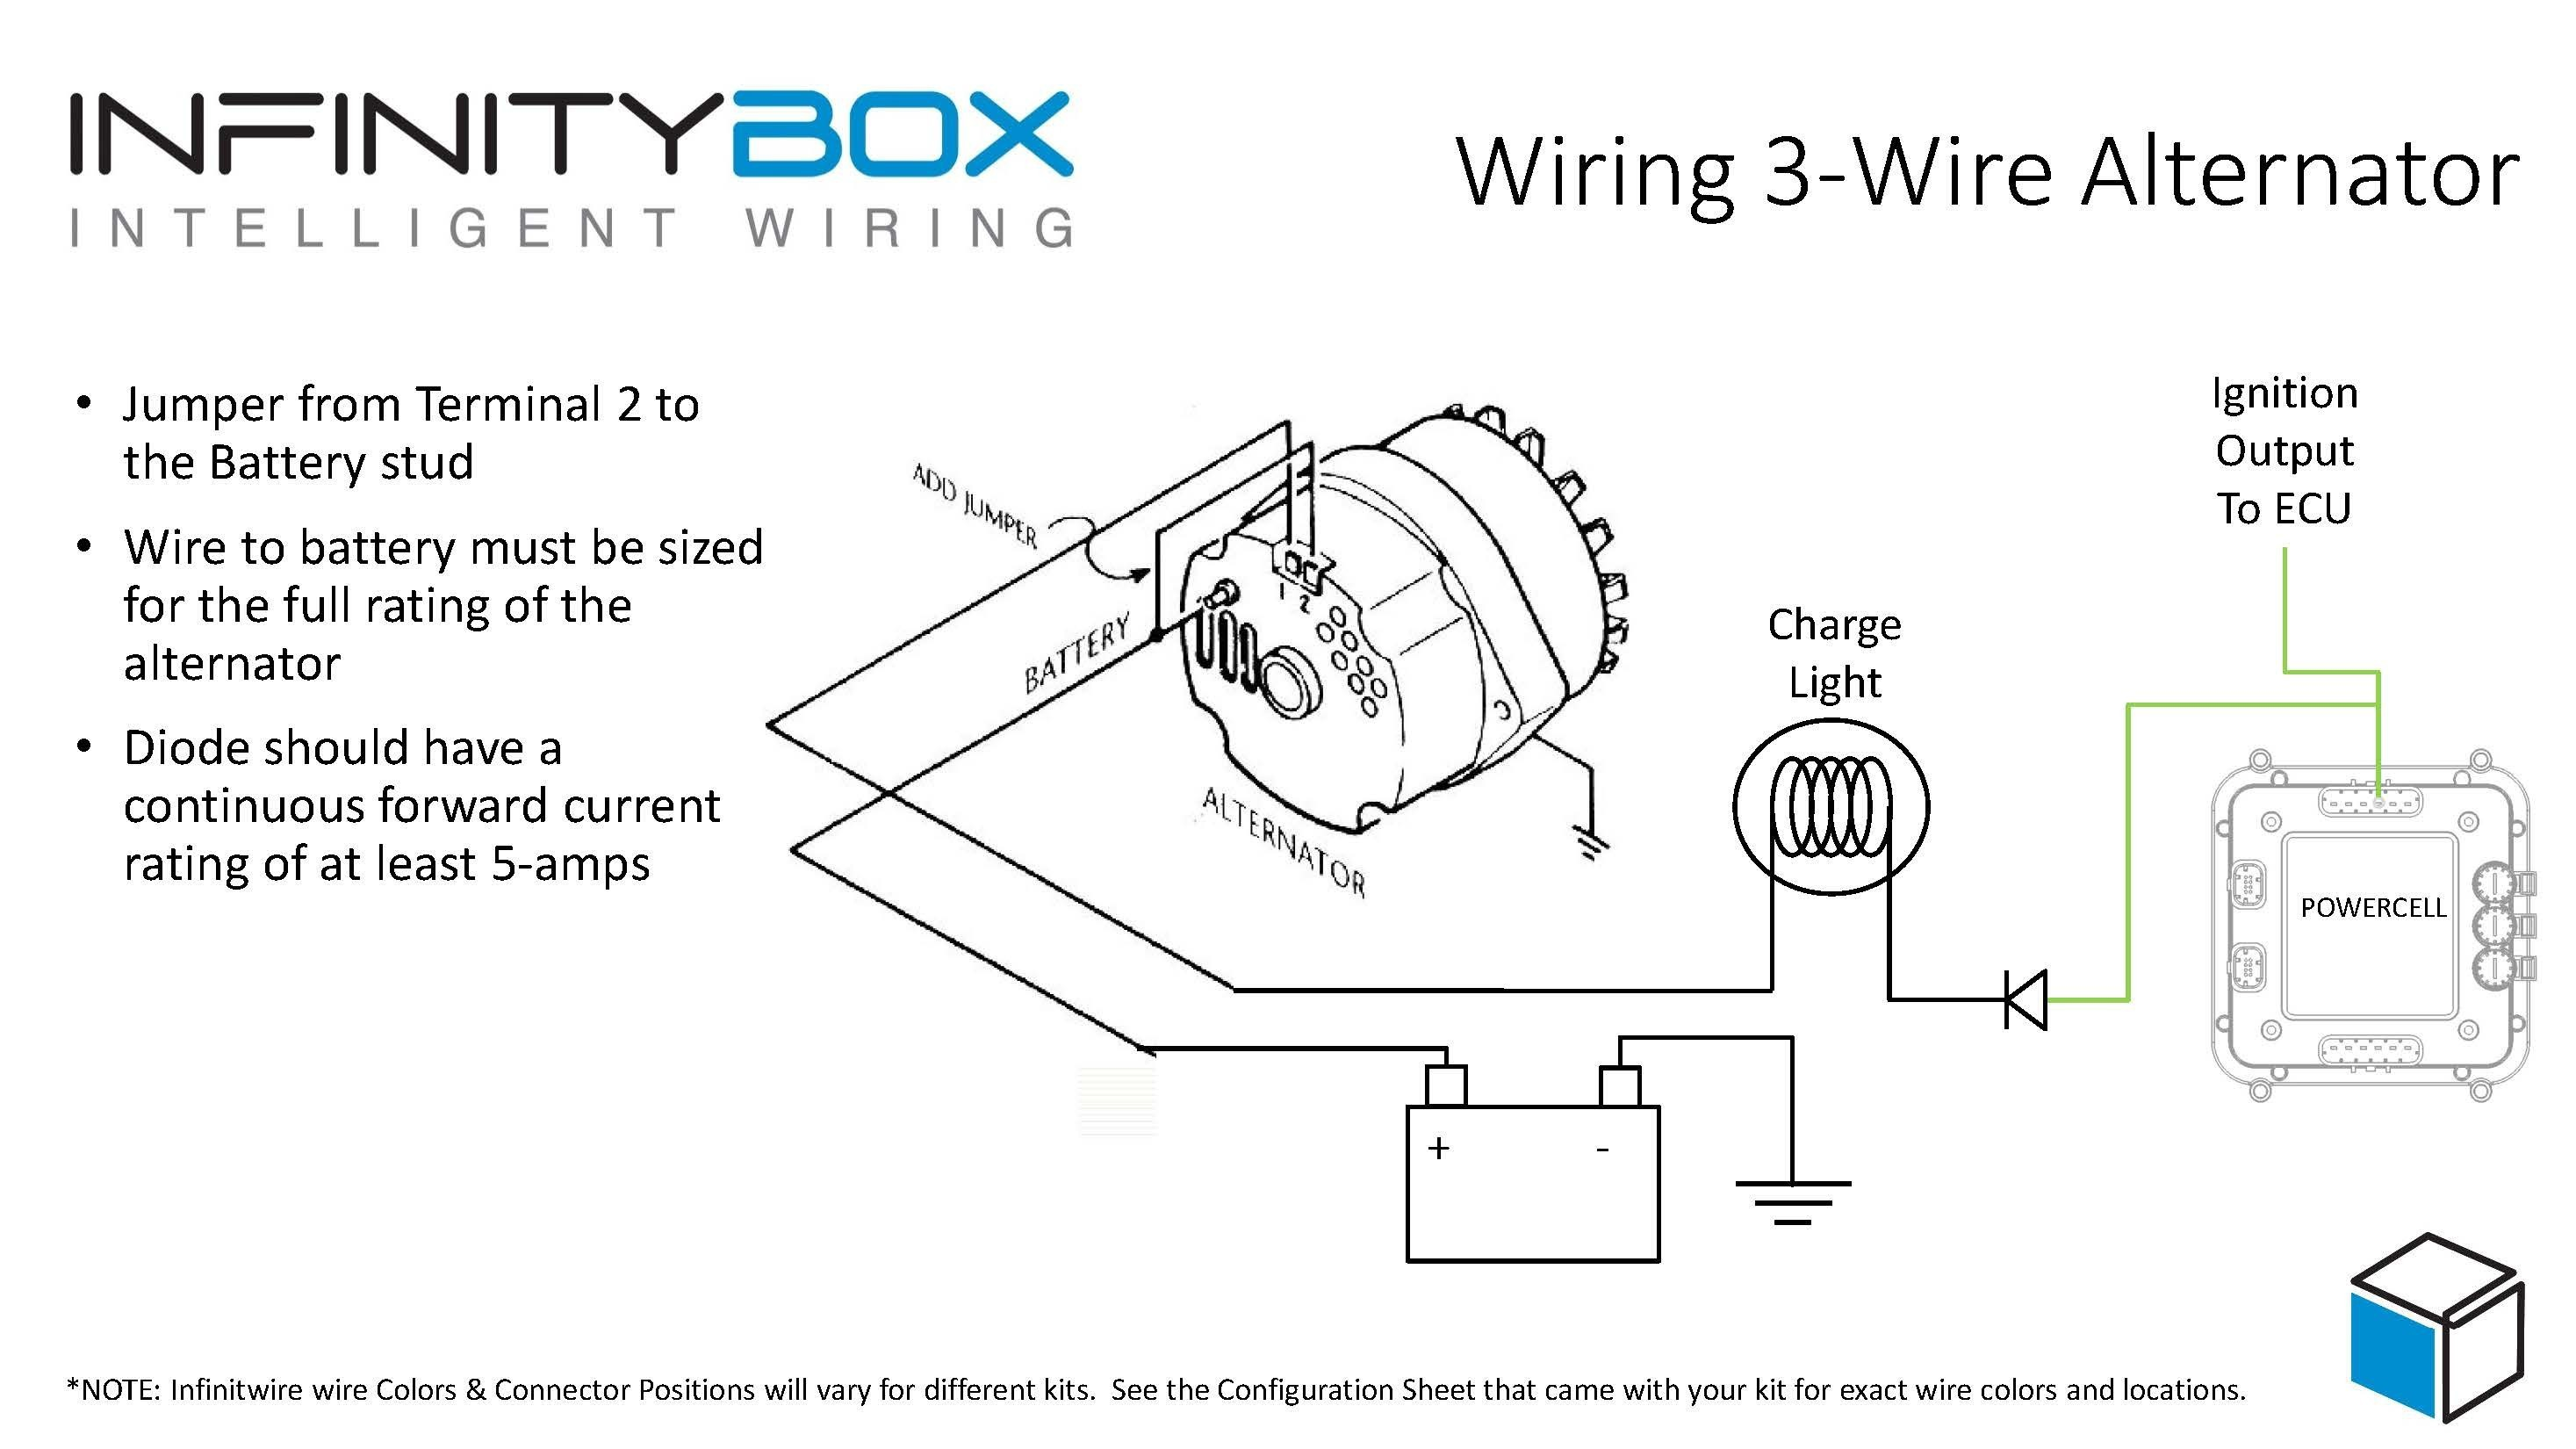 2 Wire Alternator Wiring Diagram Awesome 3 Wire Alternator Wiring Diagram Diagram Of 2 Wire Alternator Wiring Diagram